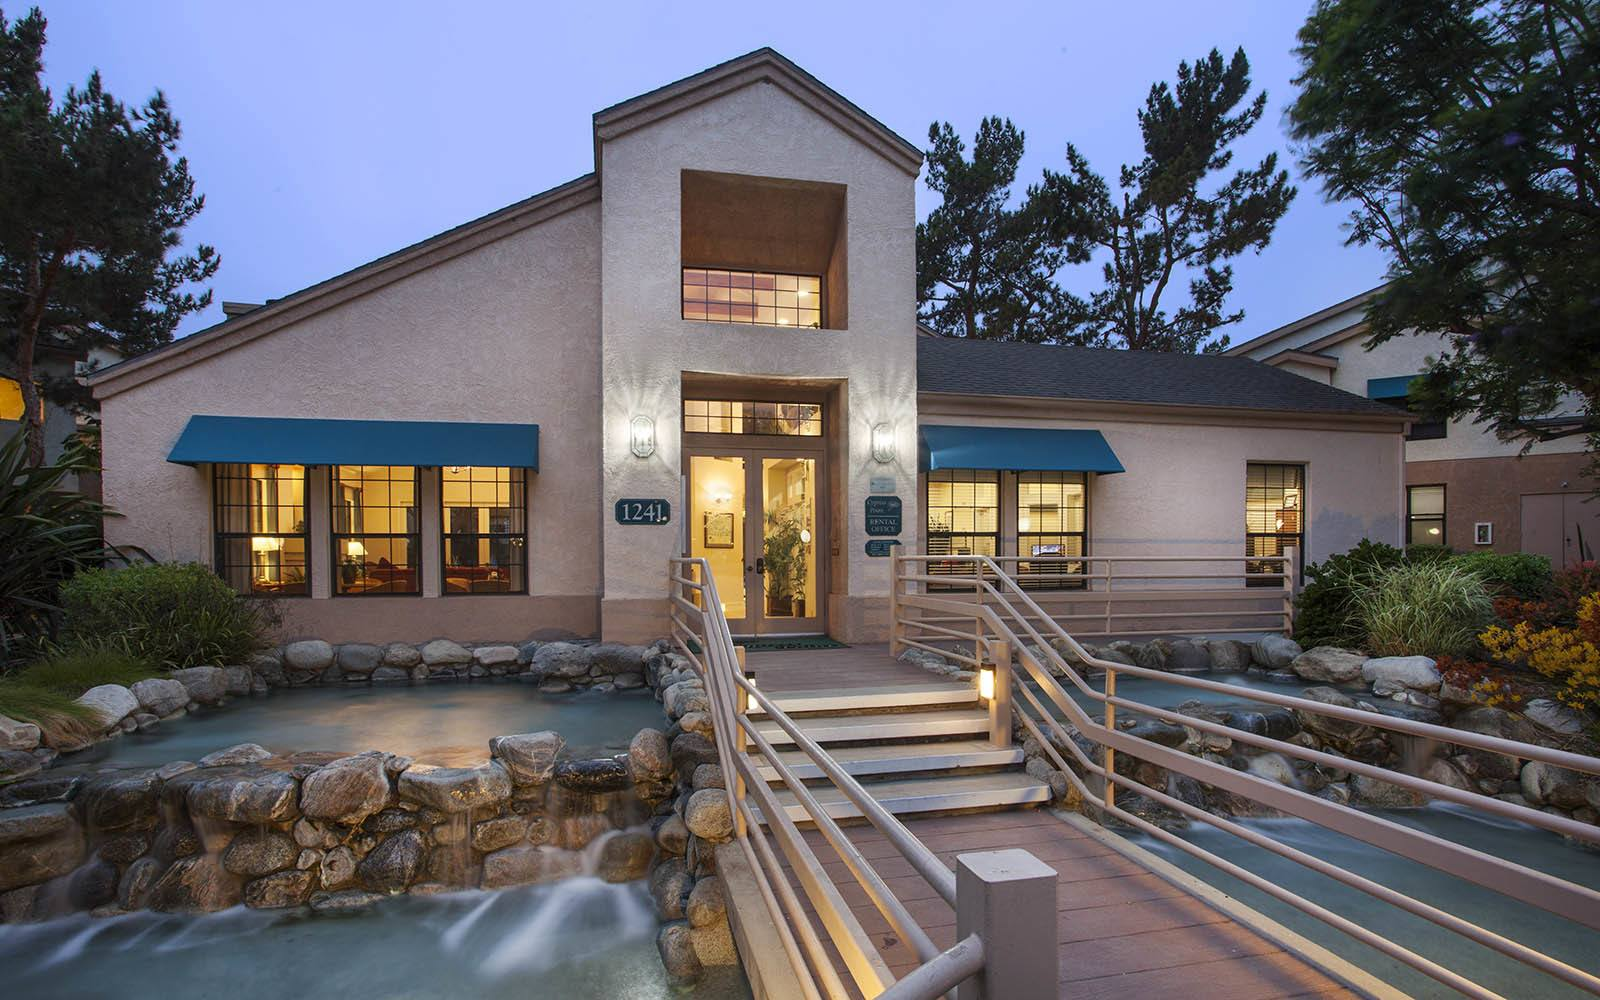 Leasing Office With Water Features at Cypress Point Apartments in Ventura, CA